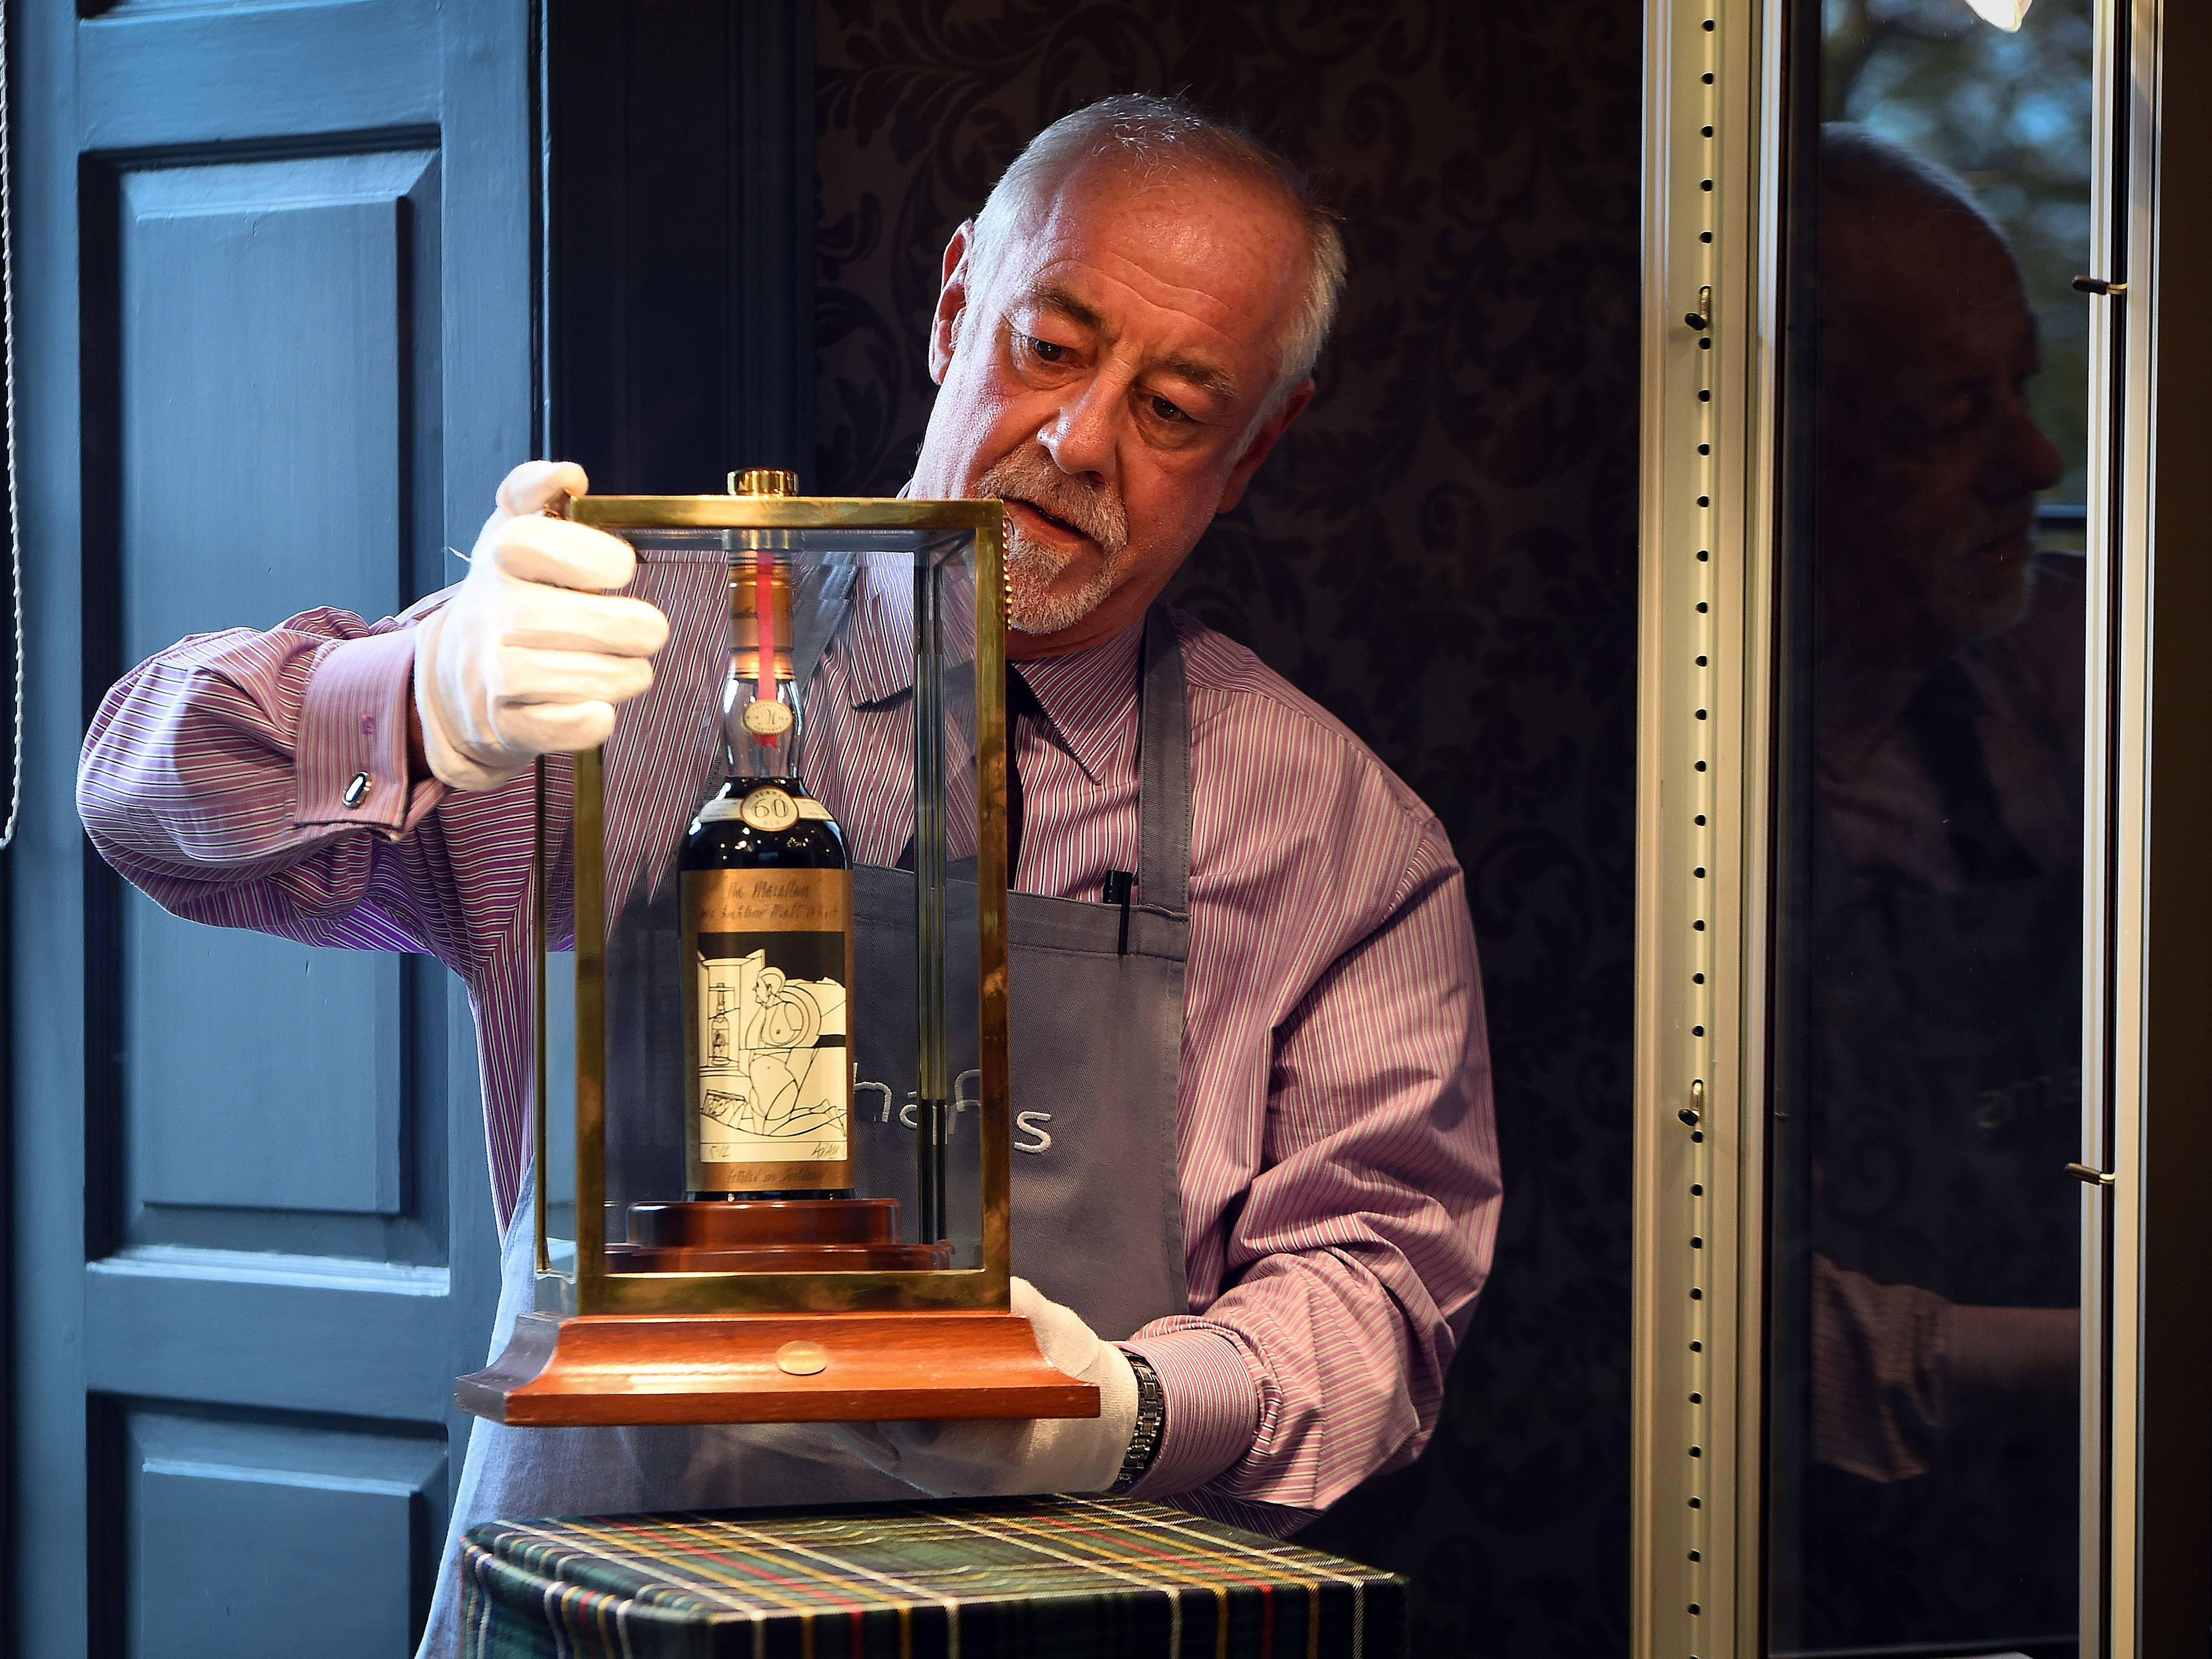 Whisky, watches, cars now alternative investments